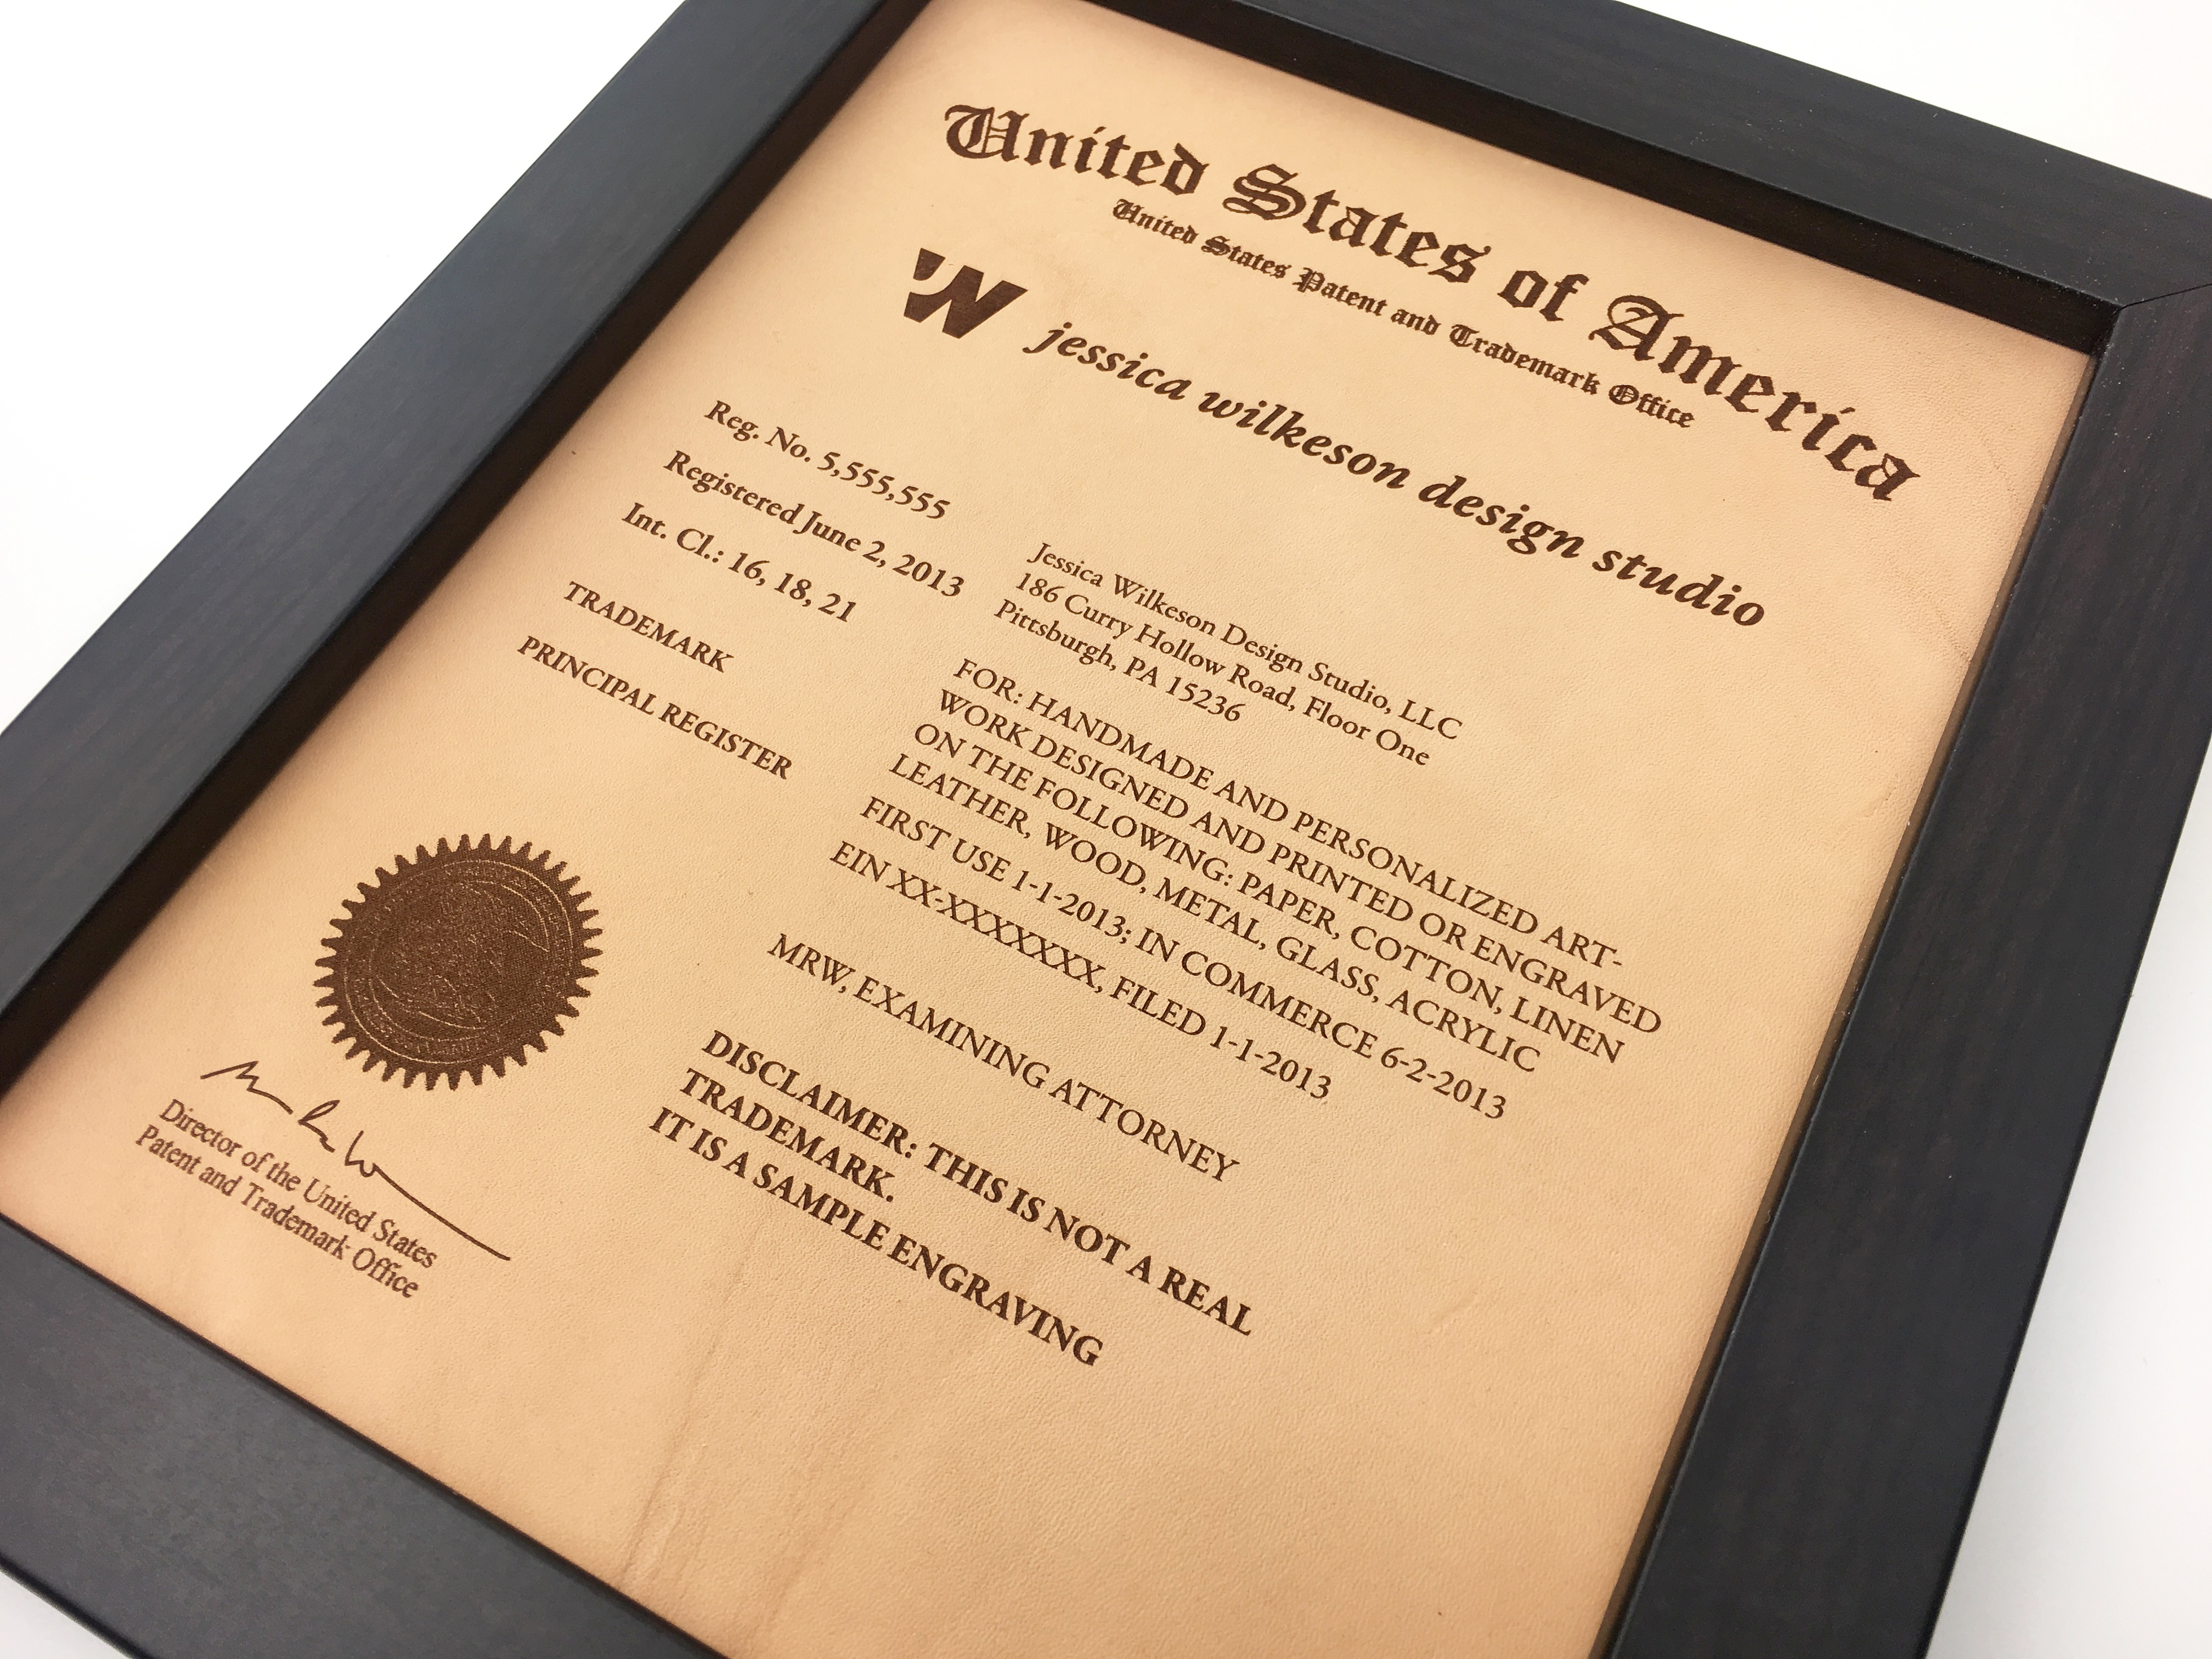 US Patent and Trademark leather plaque and frame